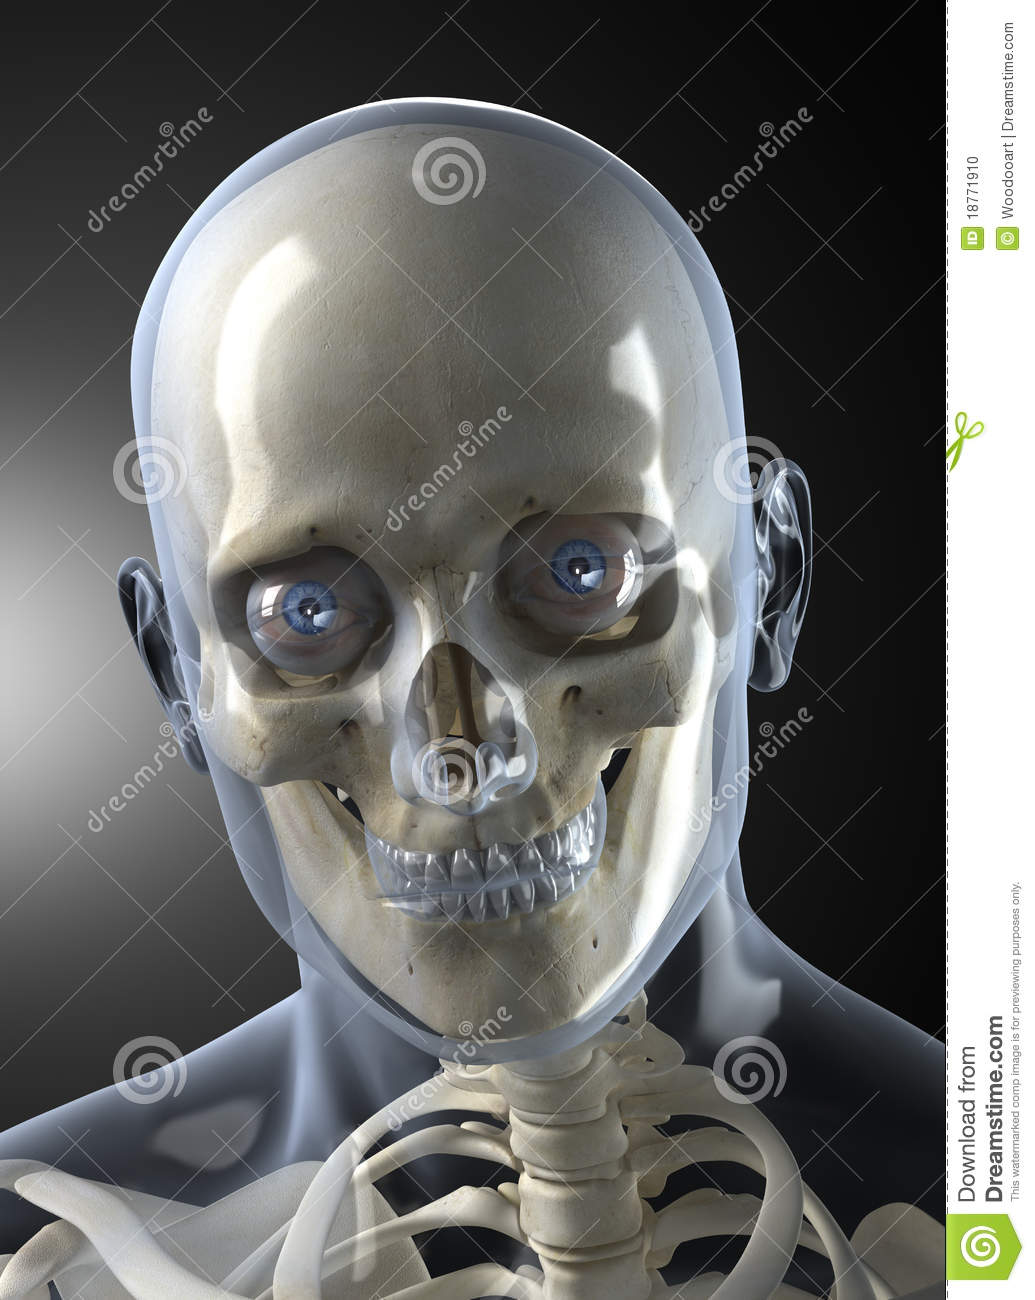 Male Human Head X-ray Front View Stock Photo - Image: 18771910 X Ray Skull 4 Views